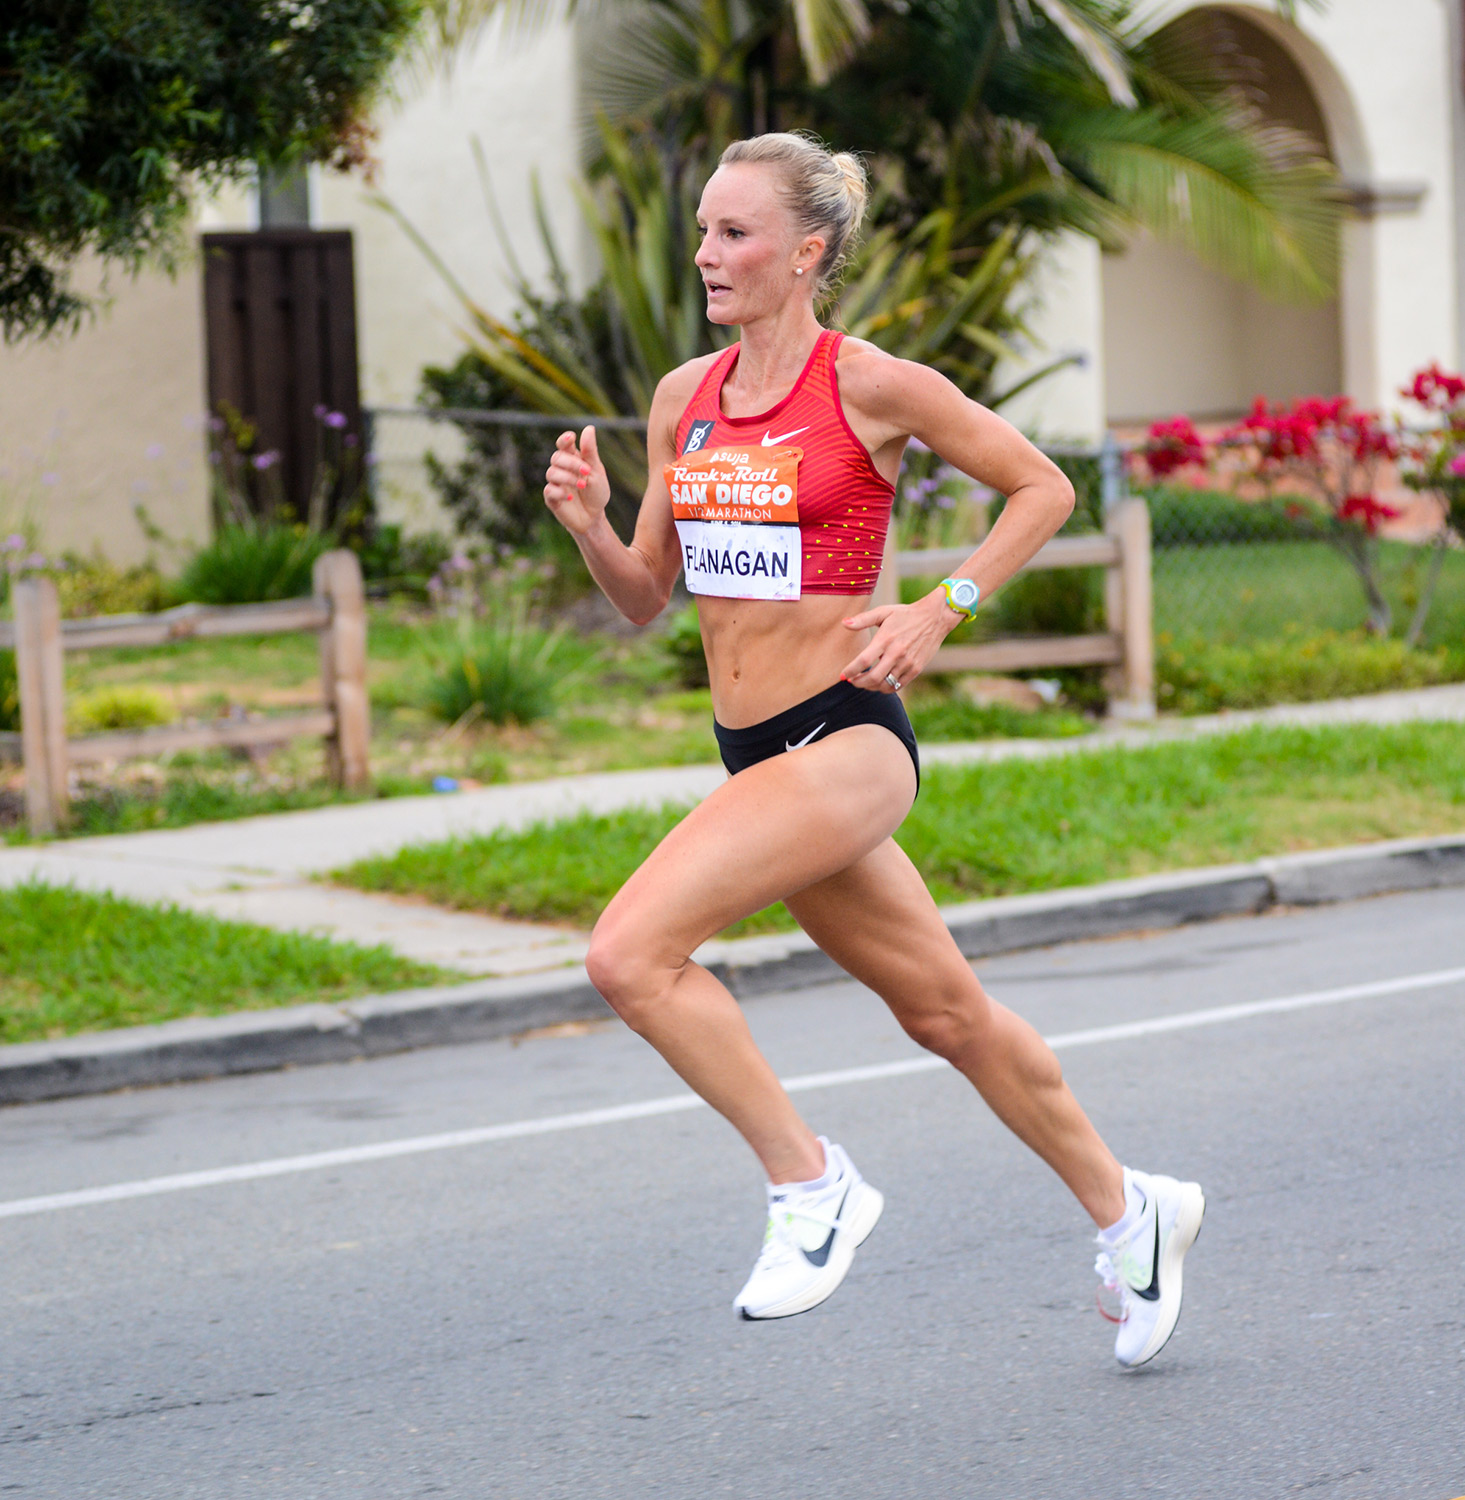 Shalane Flanaghan running and showing great running form